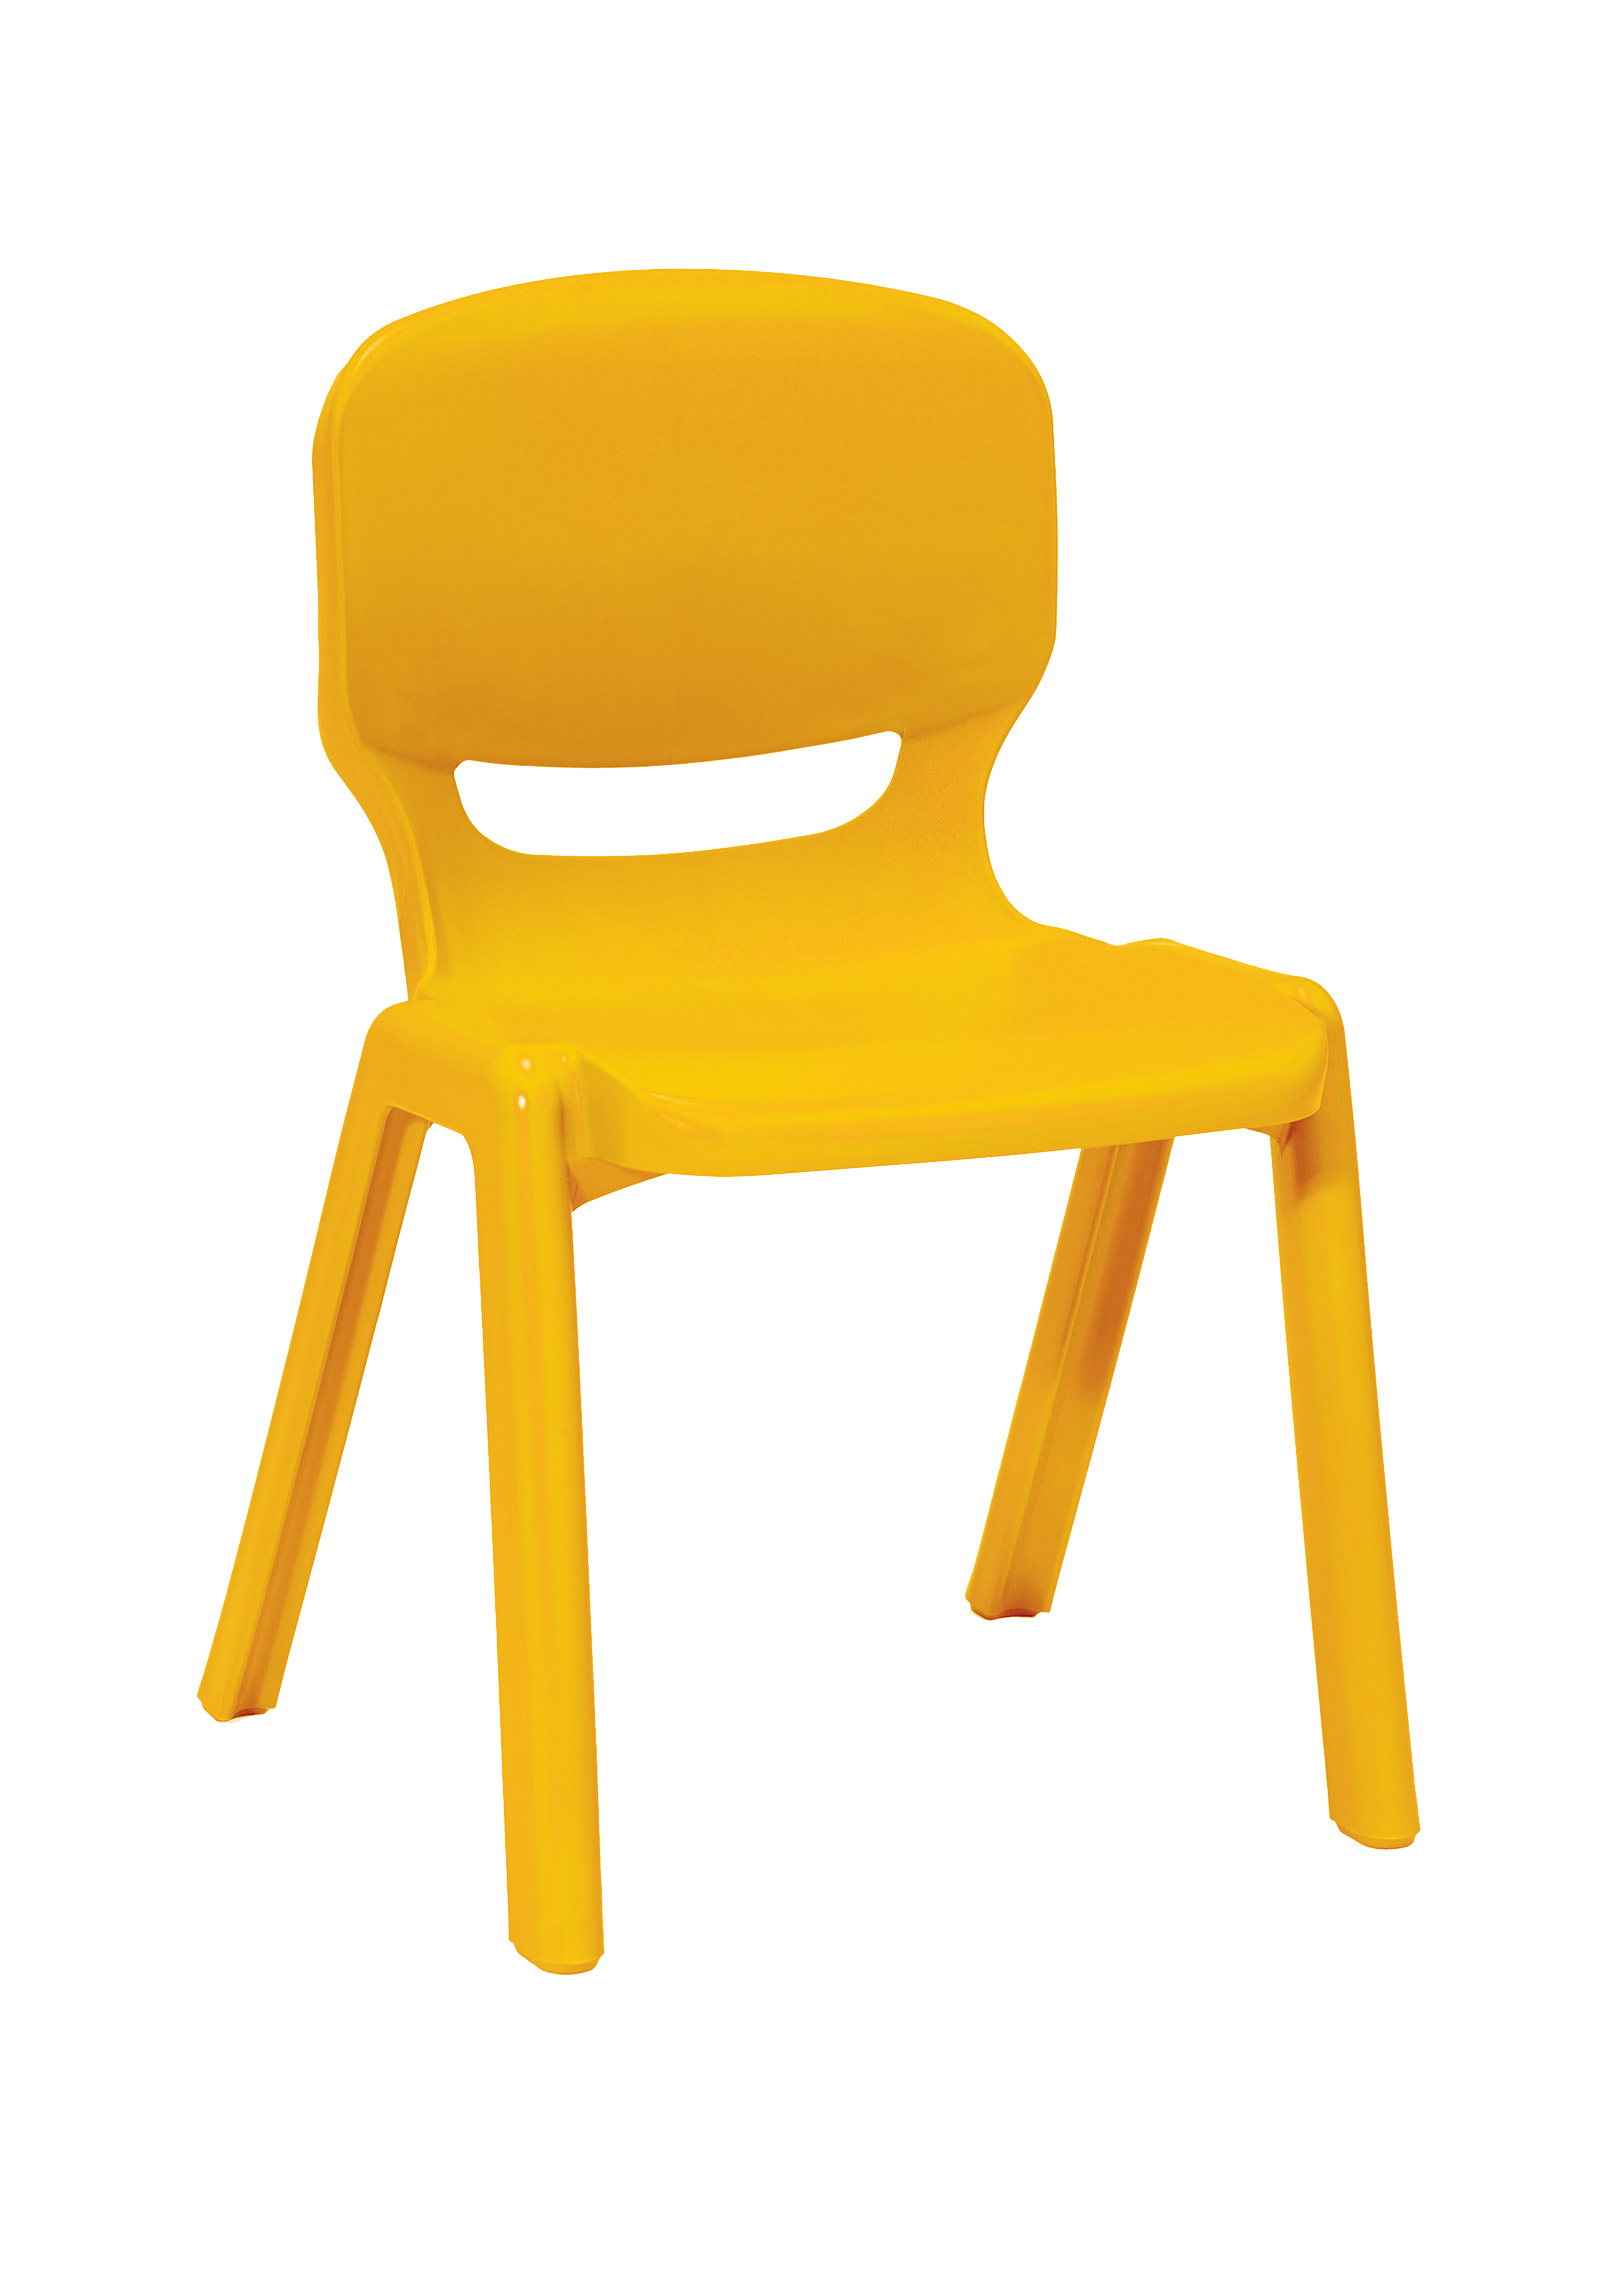 Ergos Versatile One Piece Educational Chair For Age 16+ - Yellow